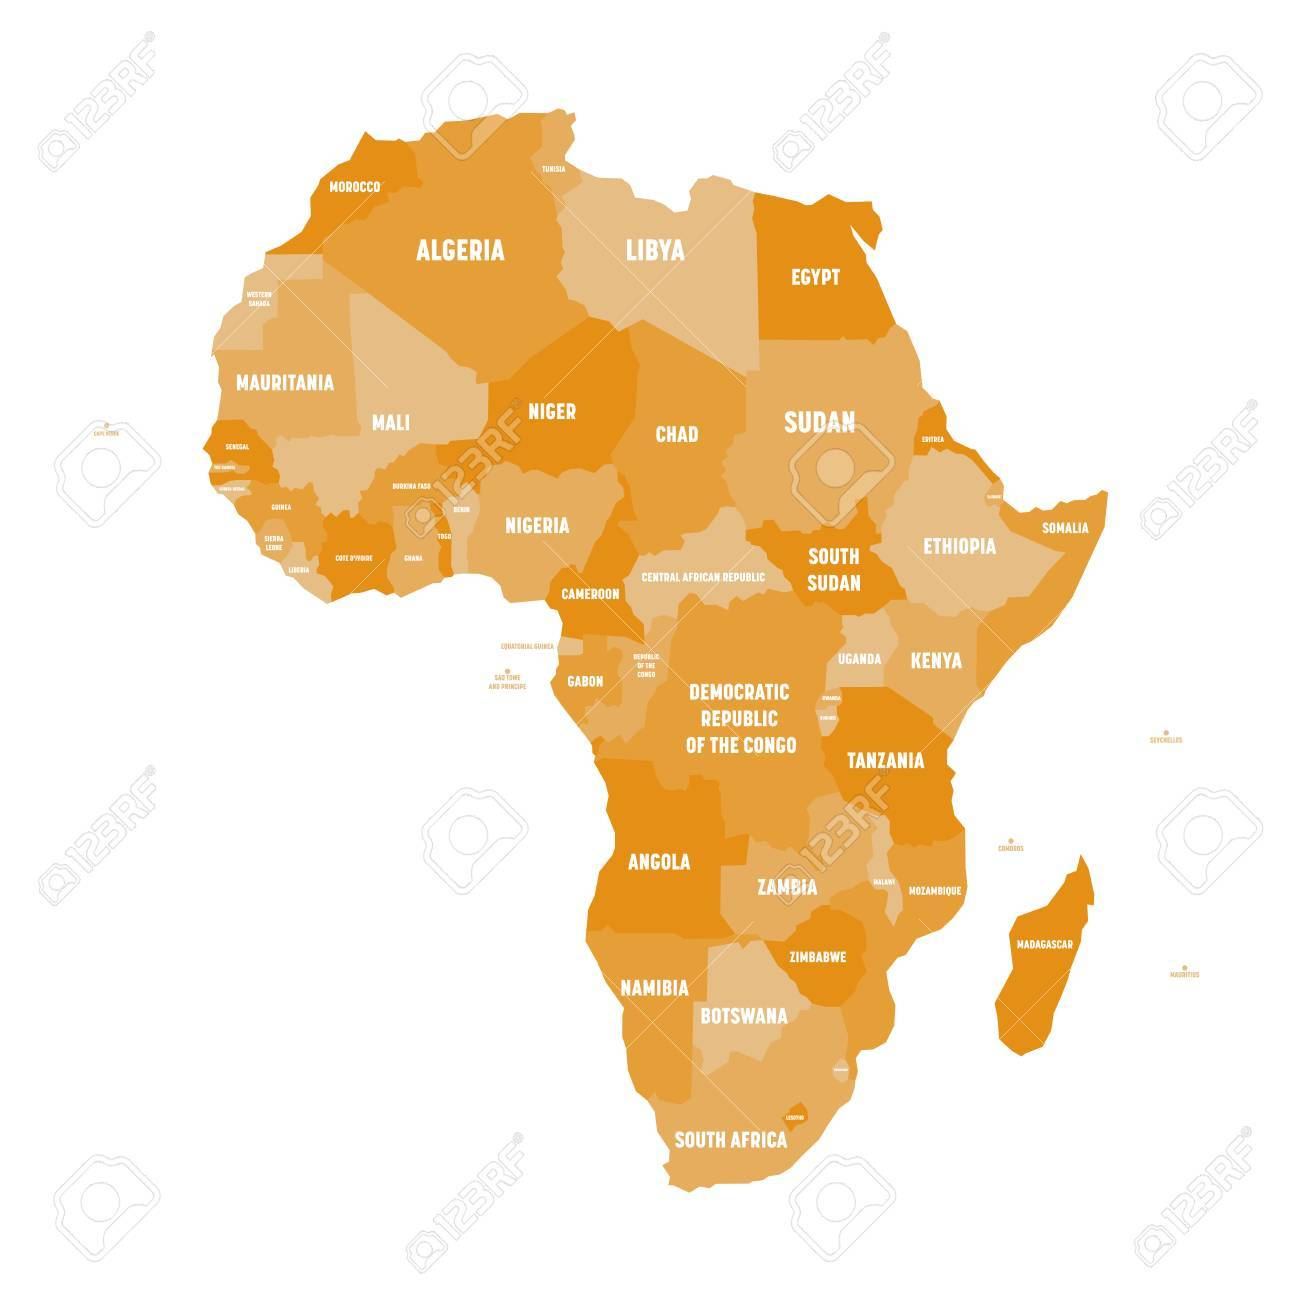 Political Map Of Africa In Four Shades Of Orange With White